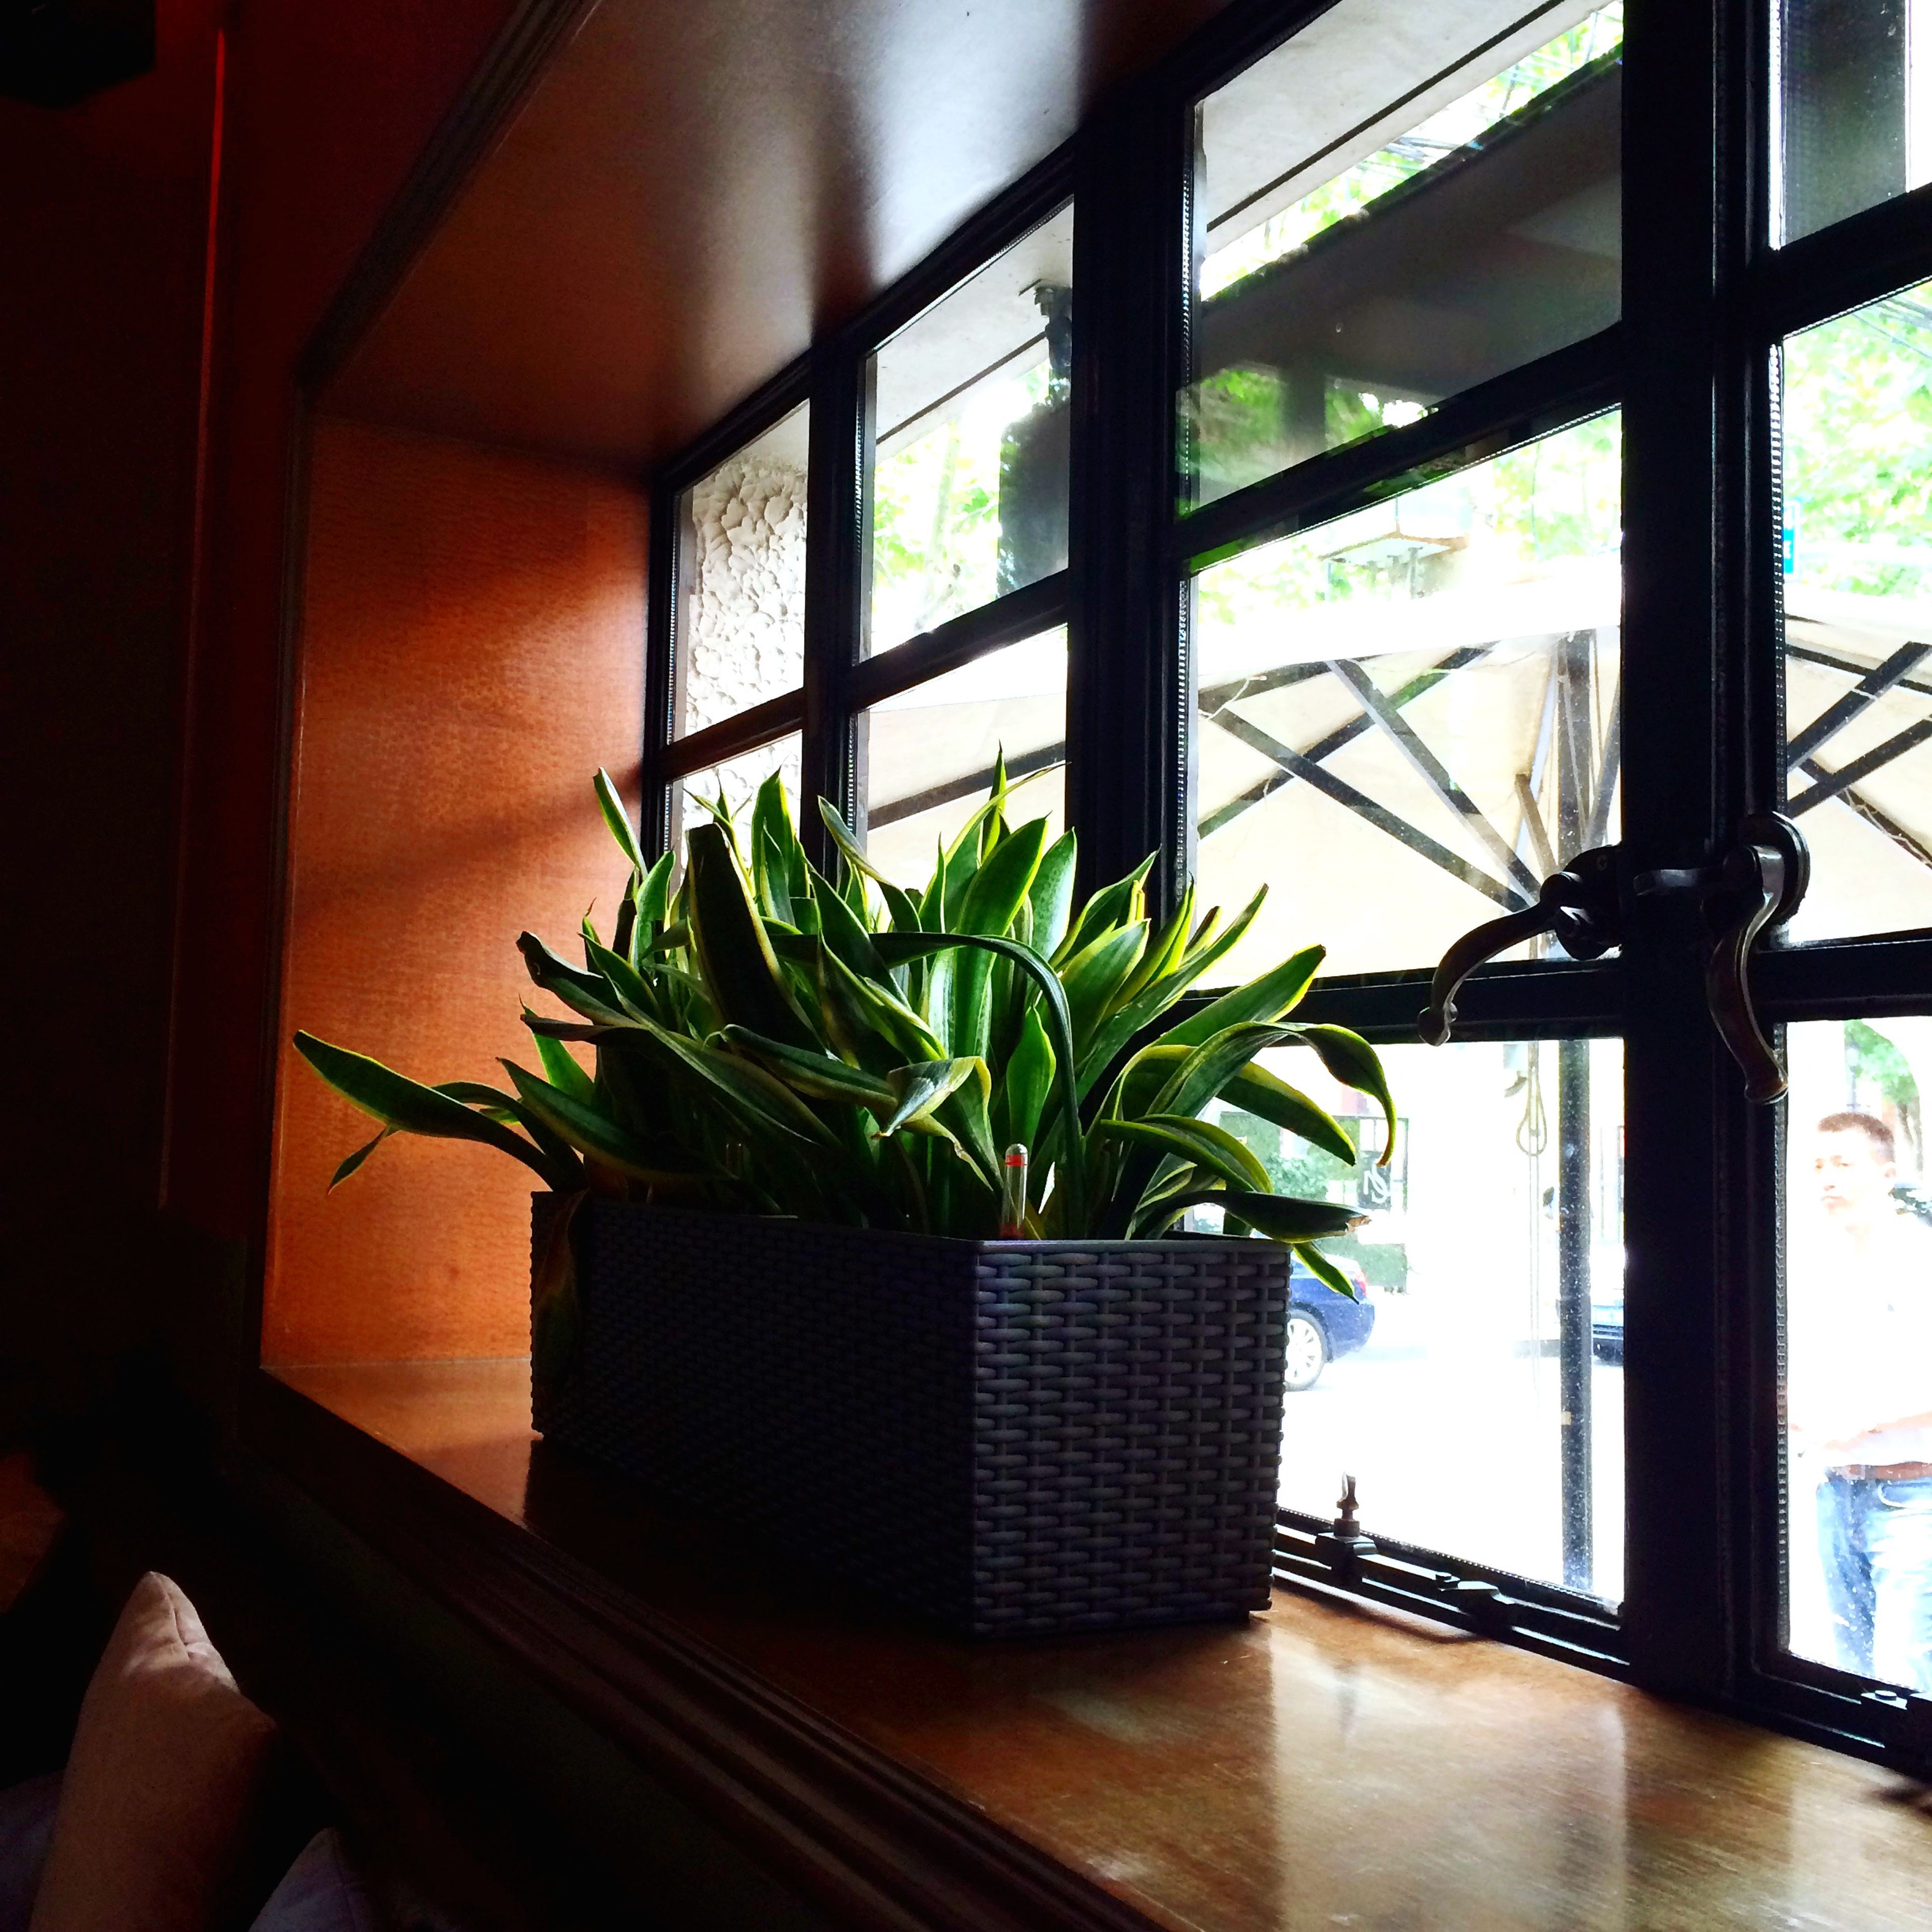 indoors, window, potted plant, green color, plant, growth, leaf, glass - material, home interior, built structure, house, architecture, transparent, window sill, no people, day, green, close-up, houseplant, sunlight